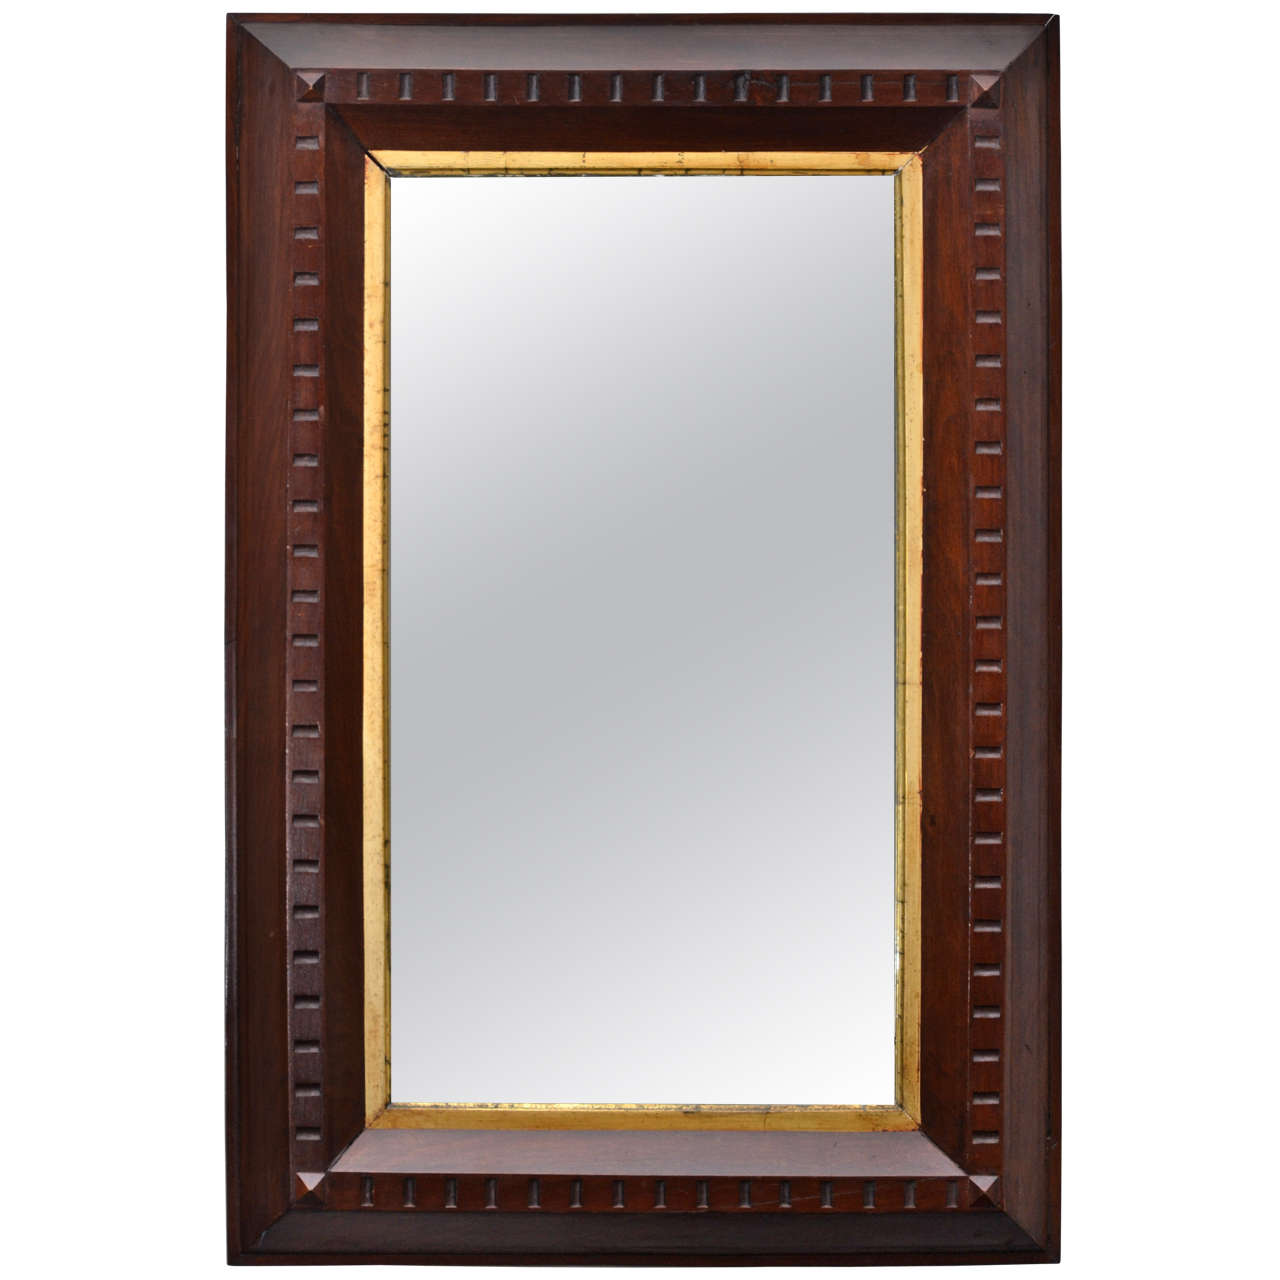 Wooden mirror with inset gilt frame for sale at 1stdibs for What is a gilt mirror